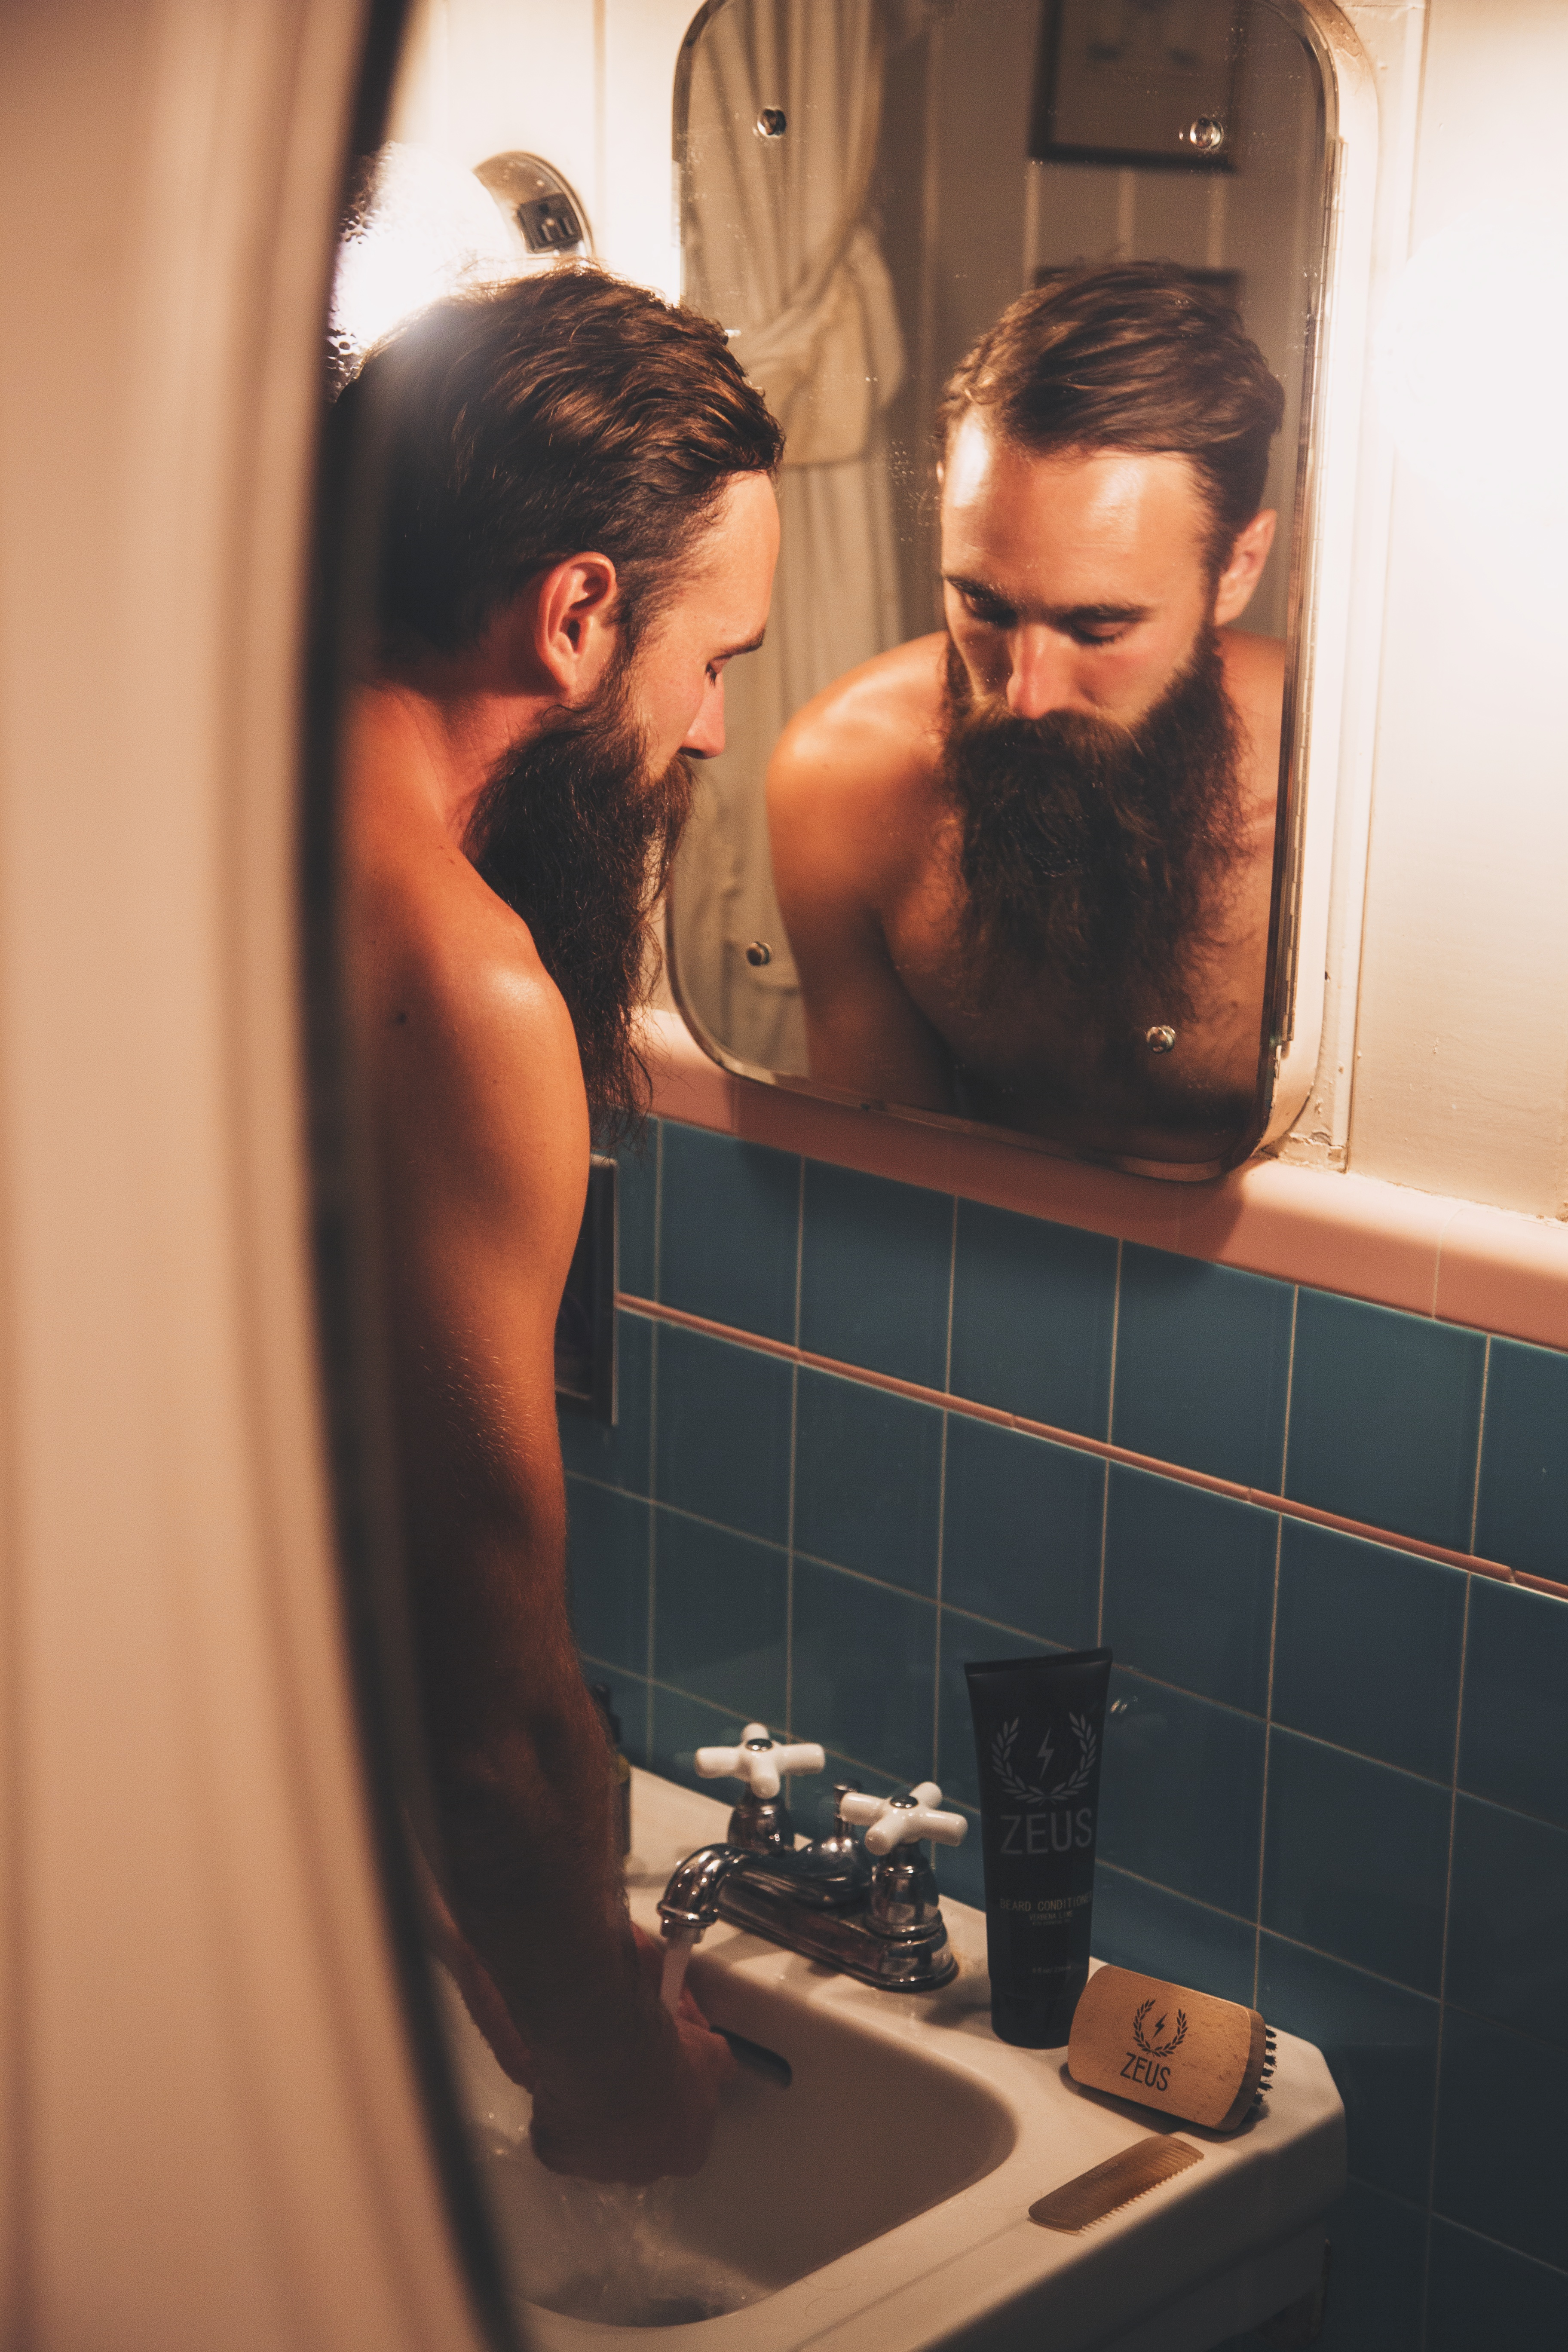 SKINCARE FOR BEARDSMEN PART 2: YOUR SKINCARE ROUTINE